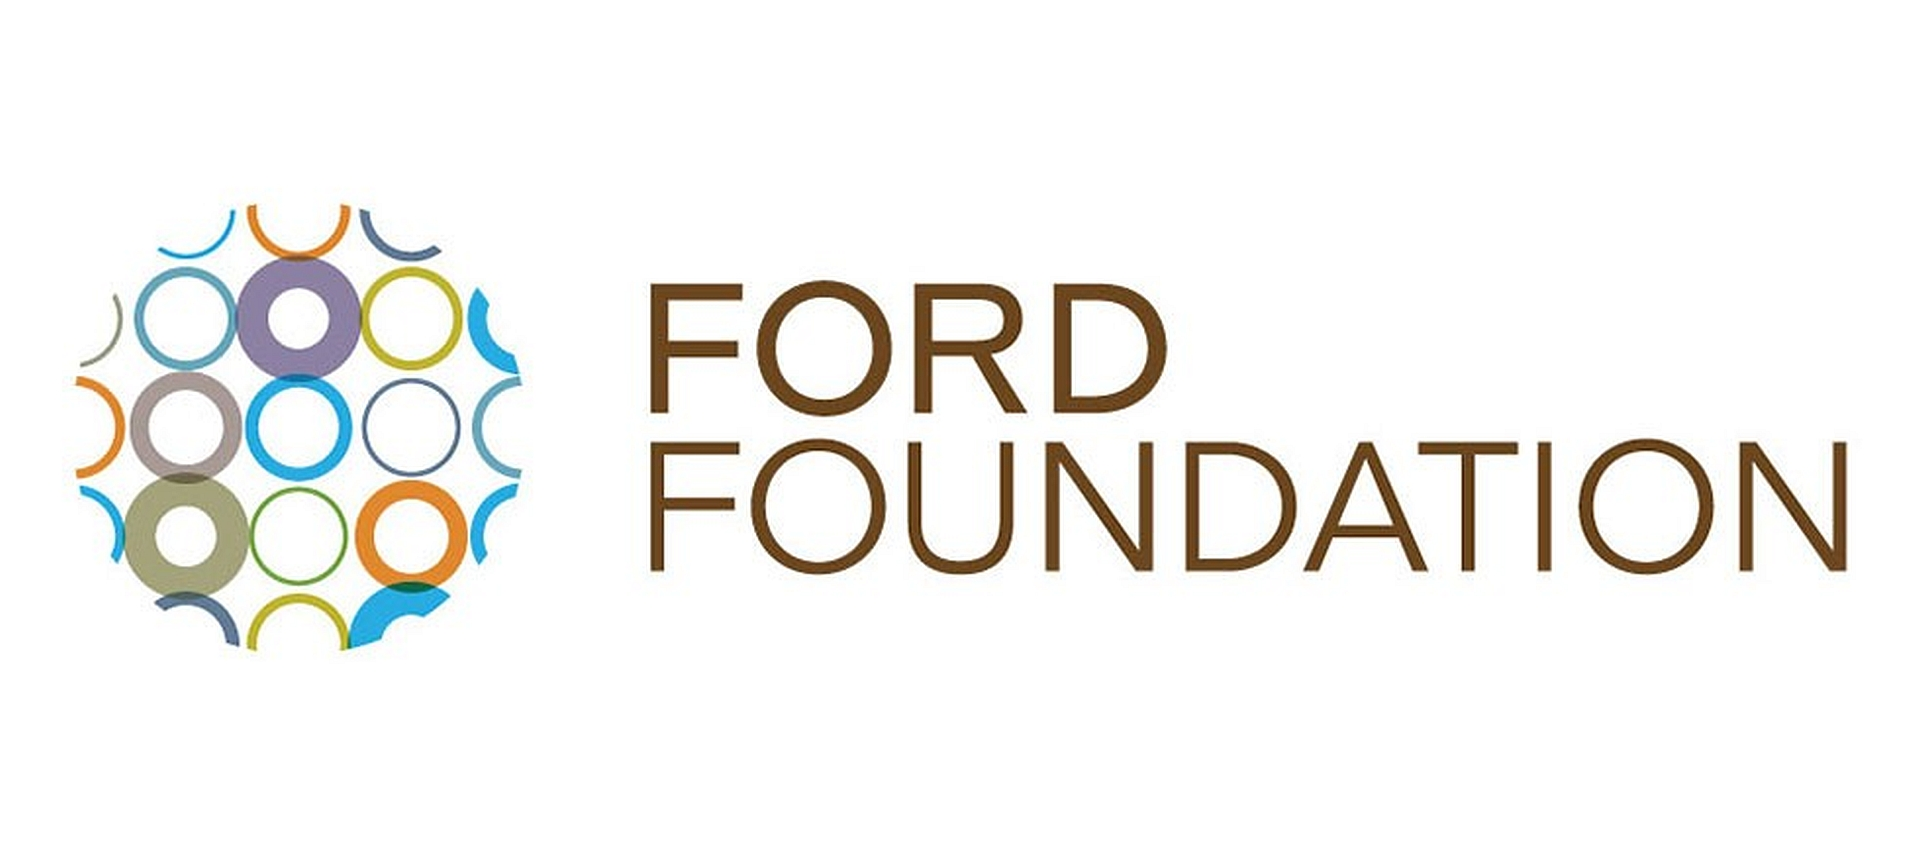 Ford Foundation - Justice begins where inequality ends